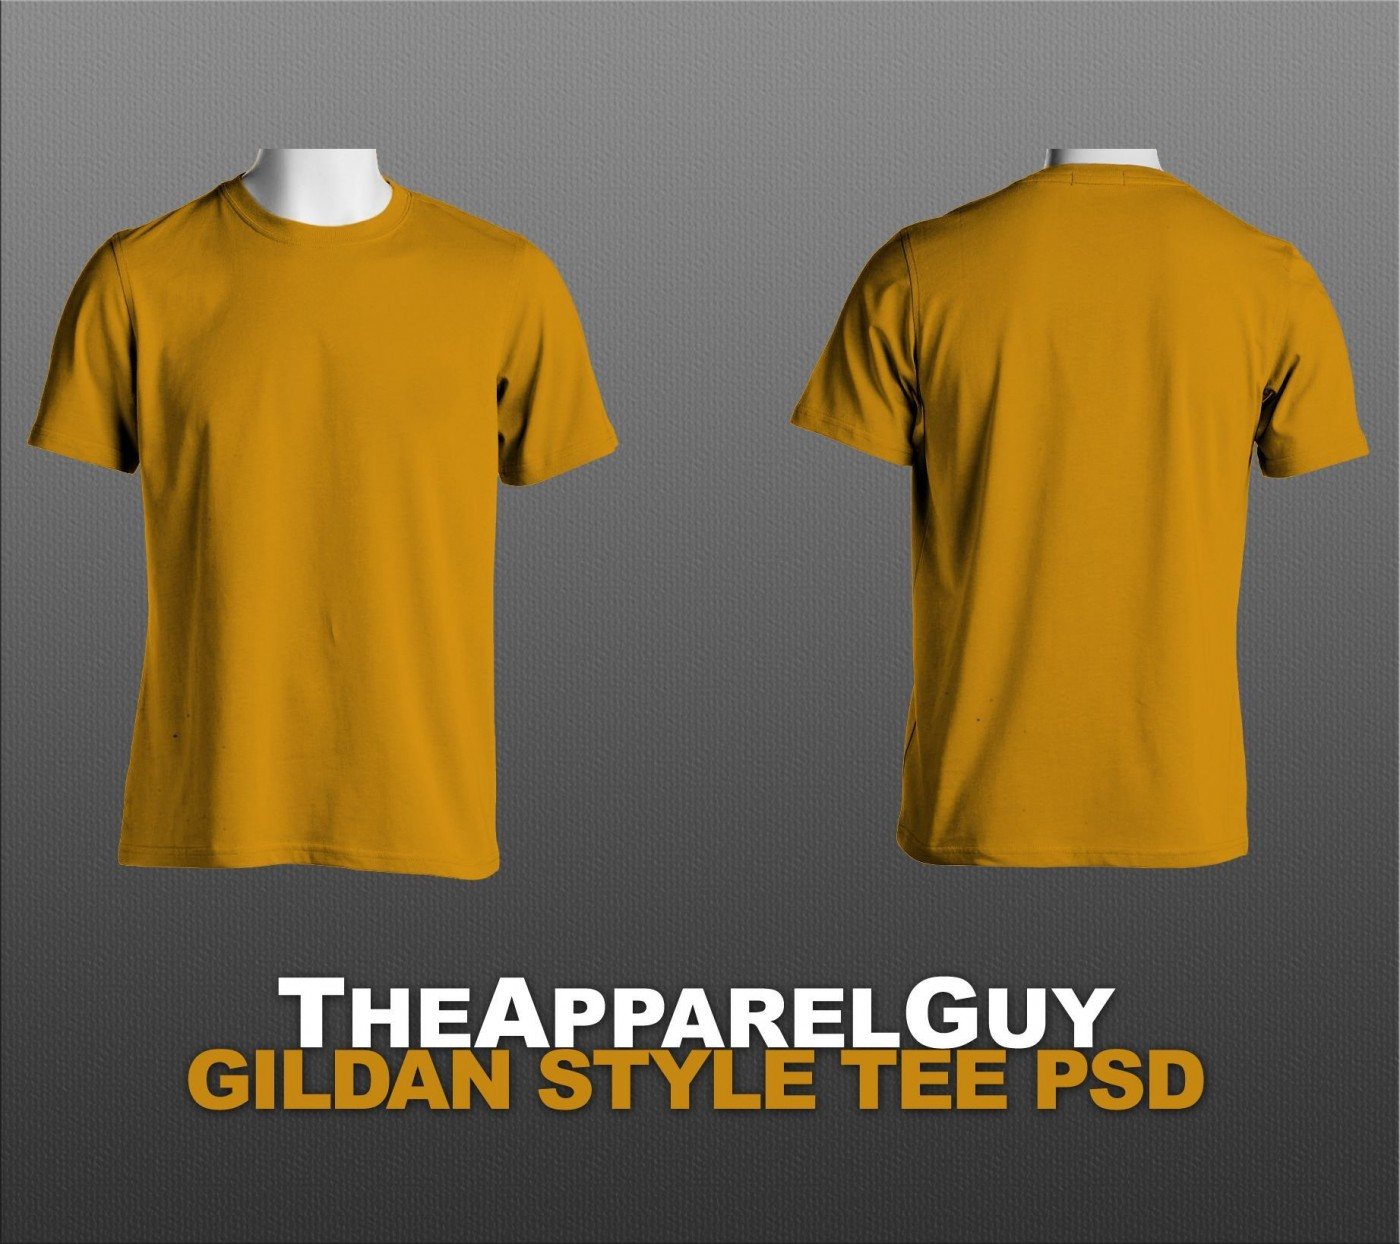 003 Breathtaking T Shirt Design Template Psd Picture  Blank T-shirt Free Download Layout Photoshop1400